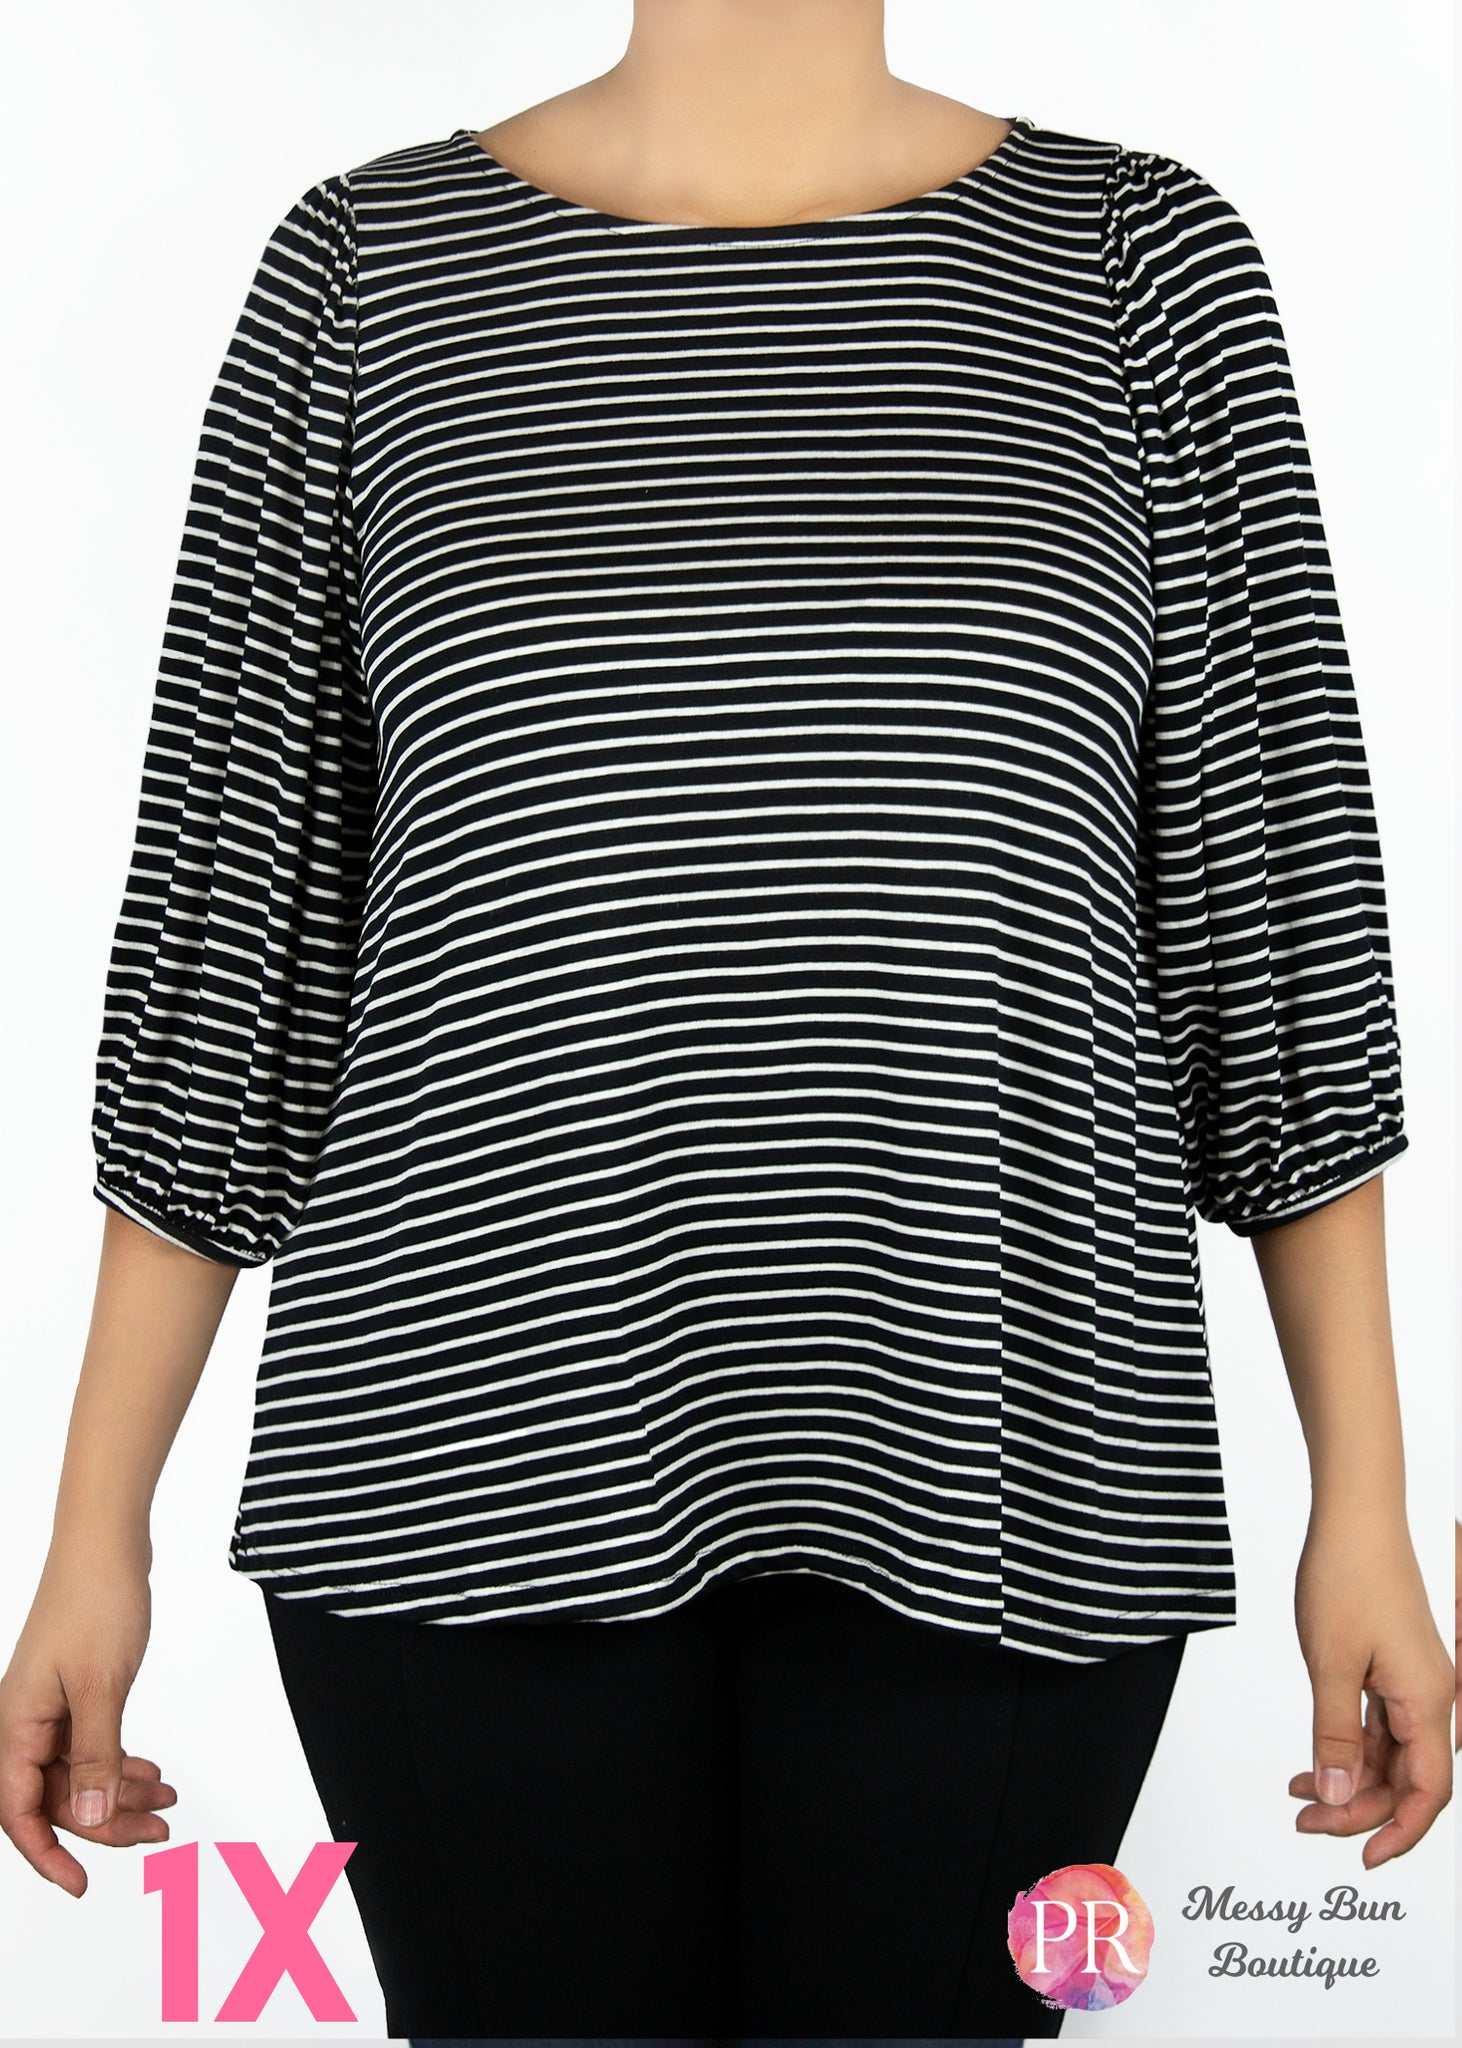 1X Black and White Striped Paisley Raye Violet Top